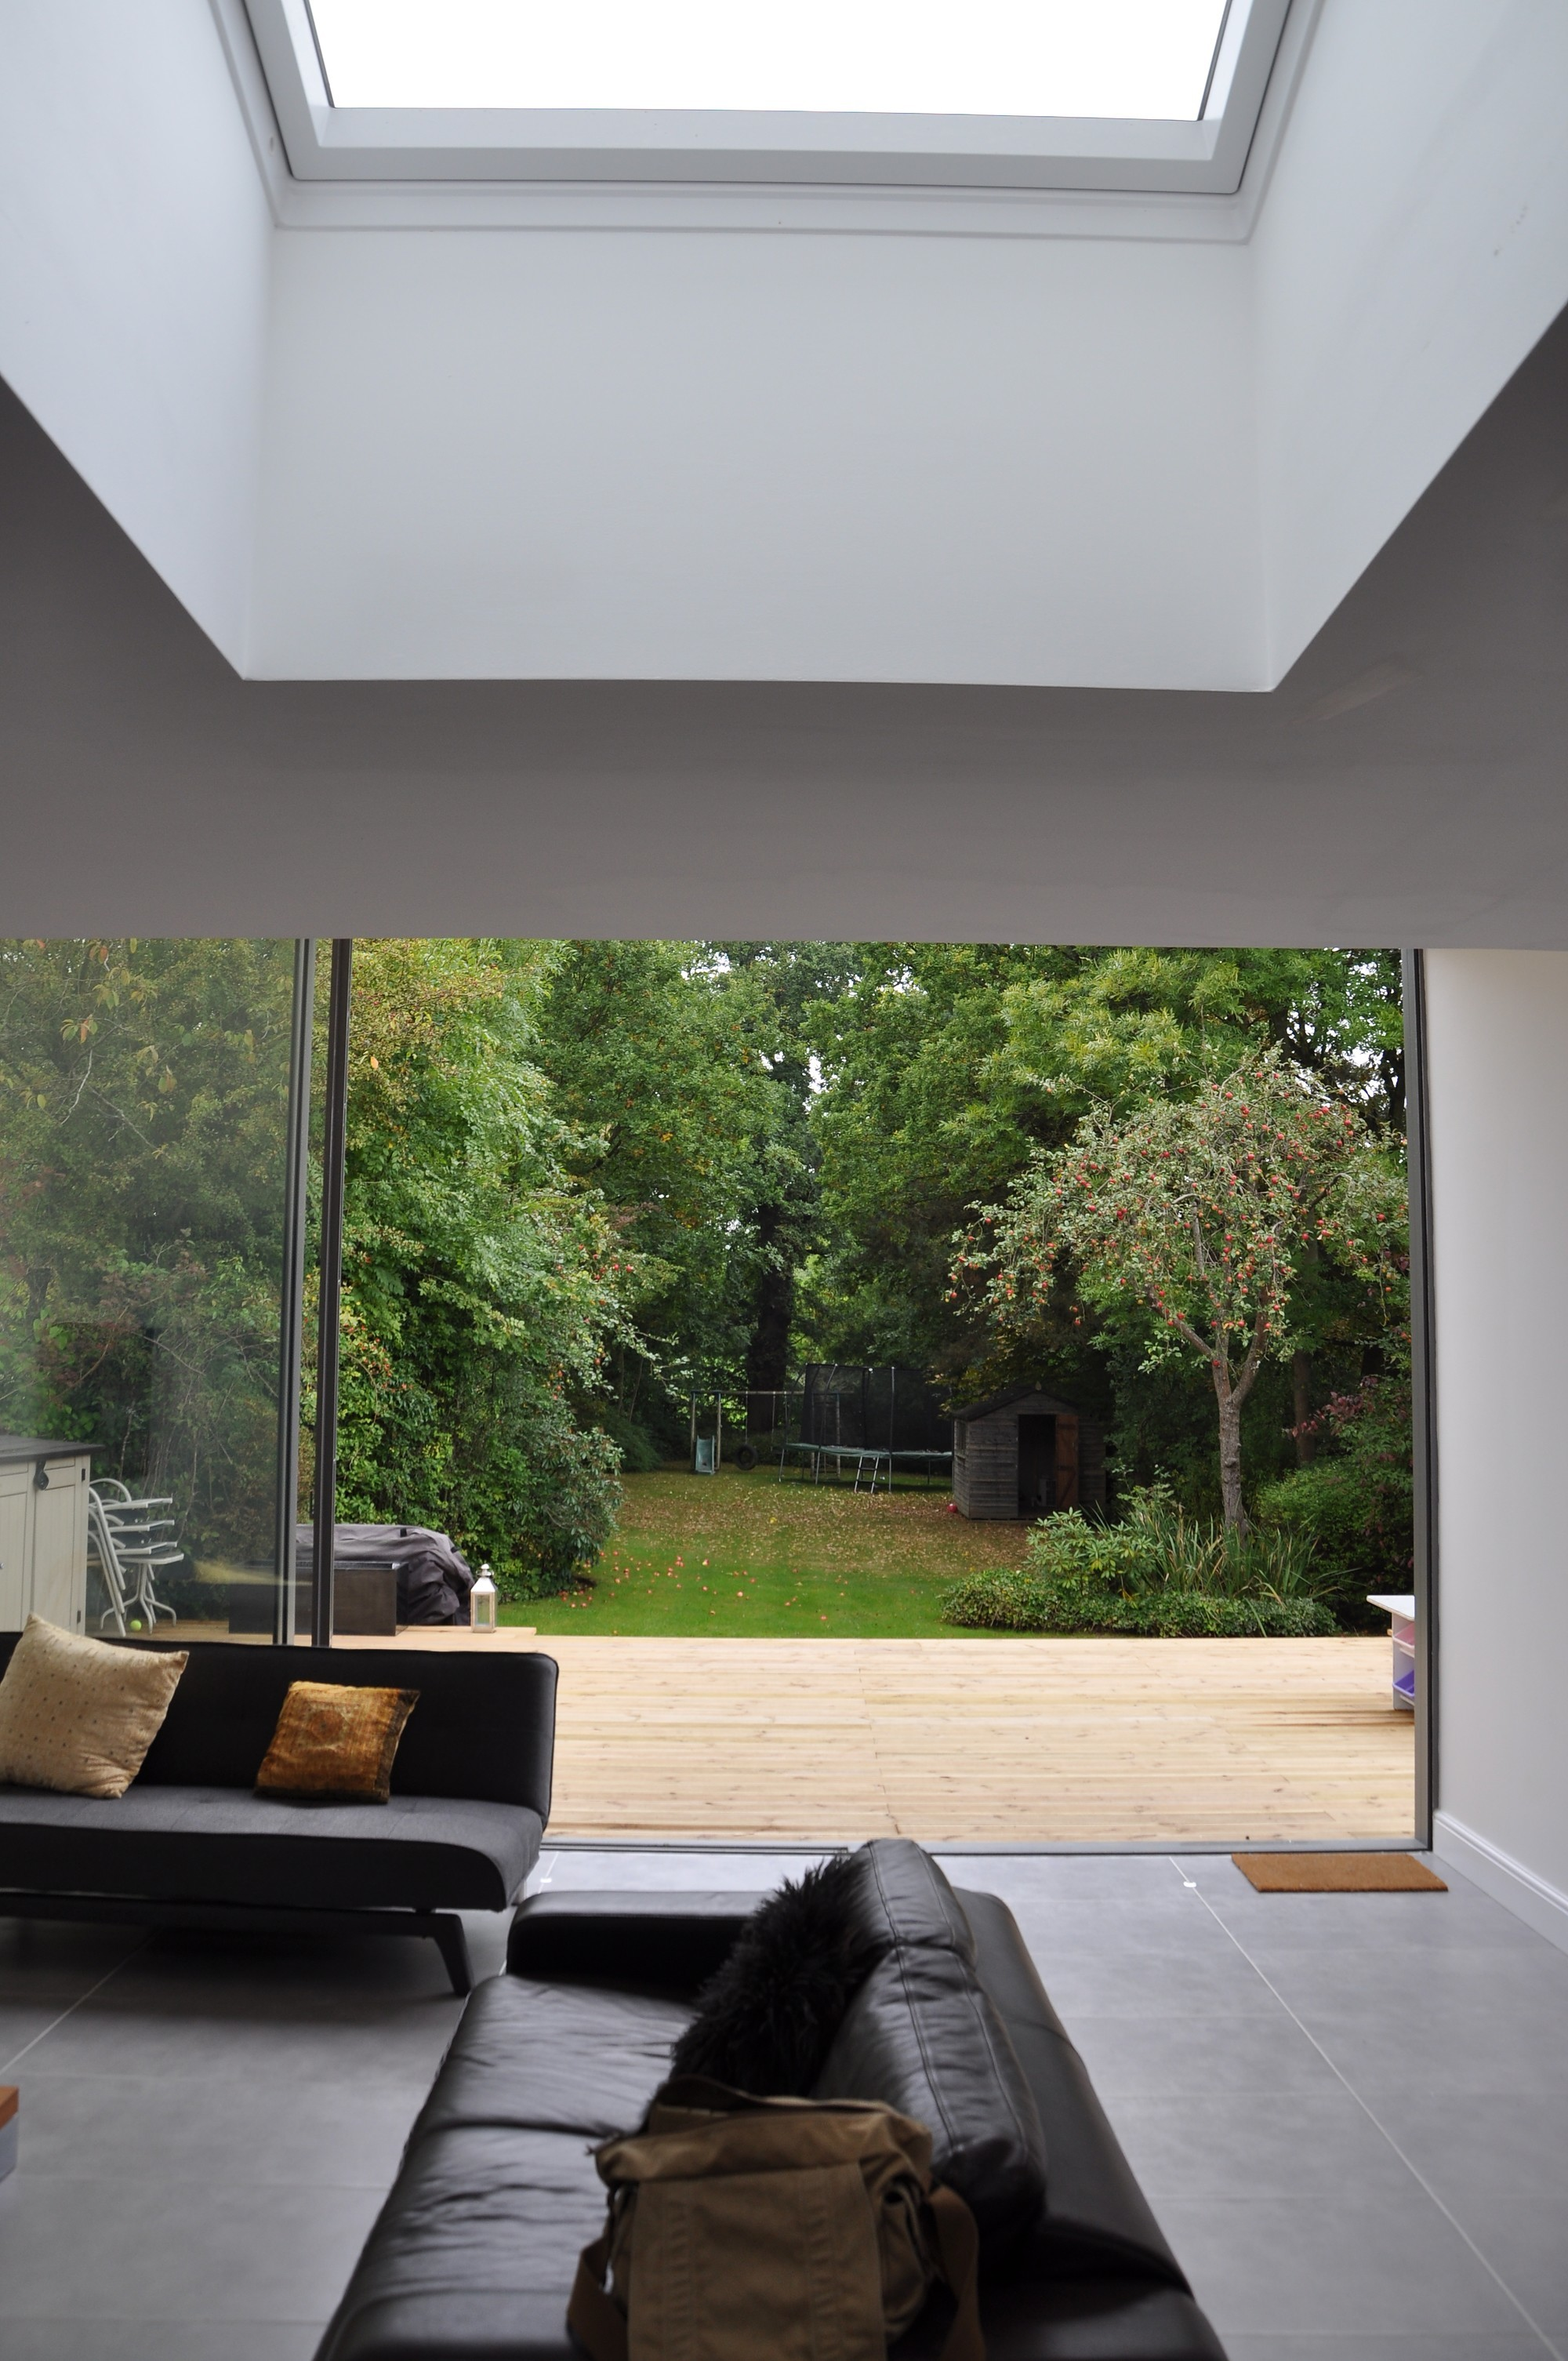 Plenty of natural light entering the contemporary extension